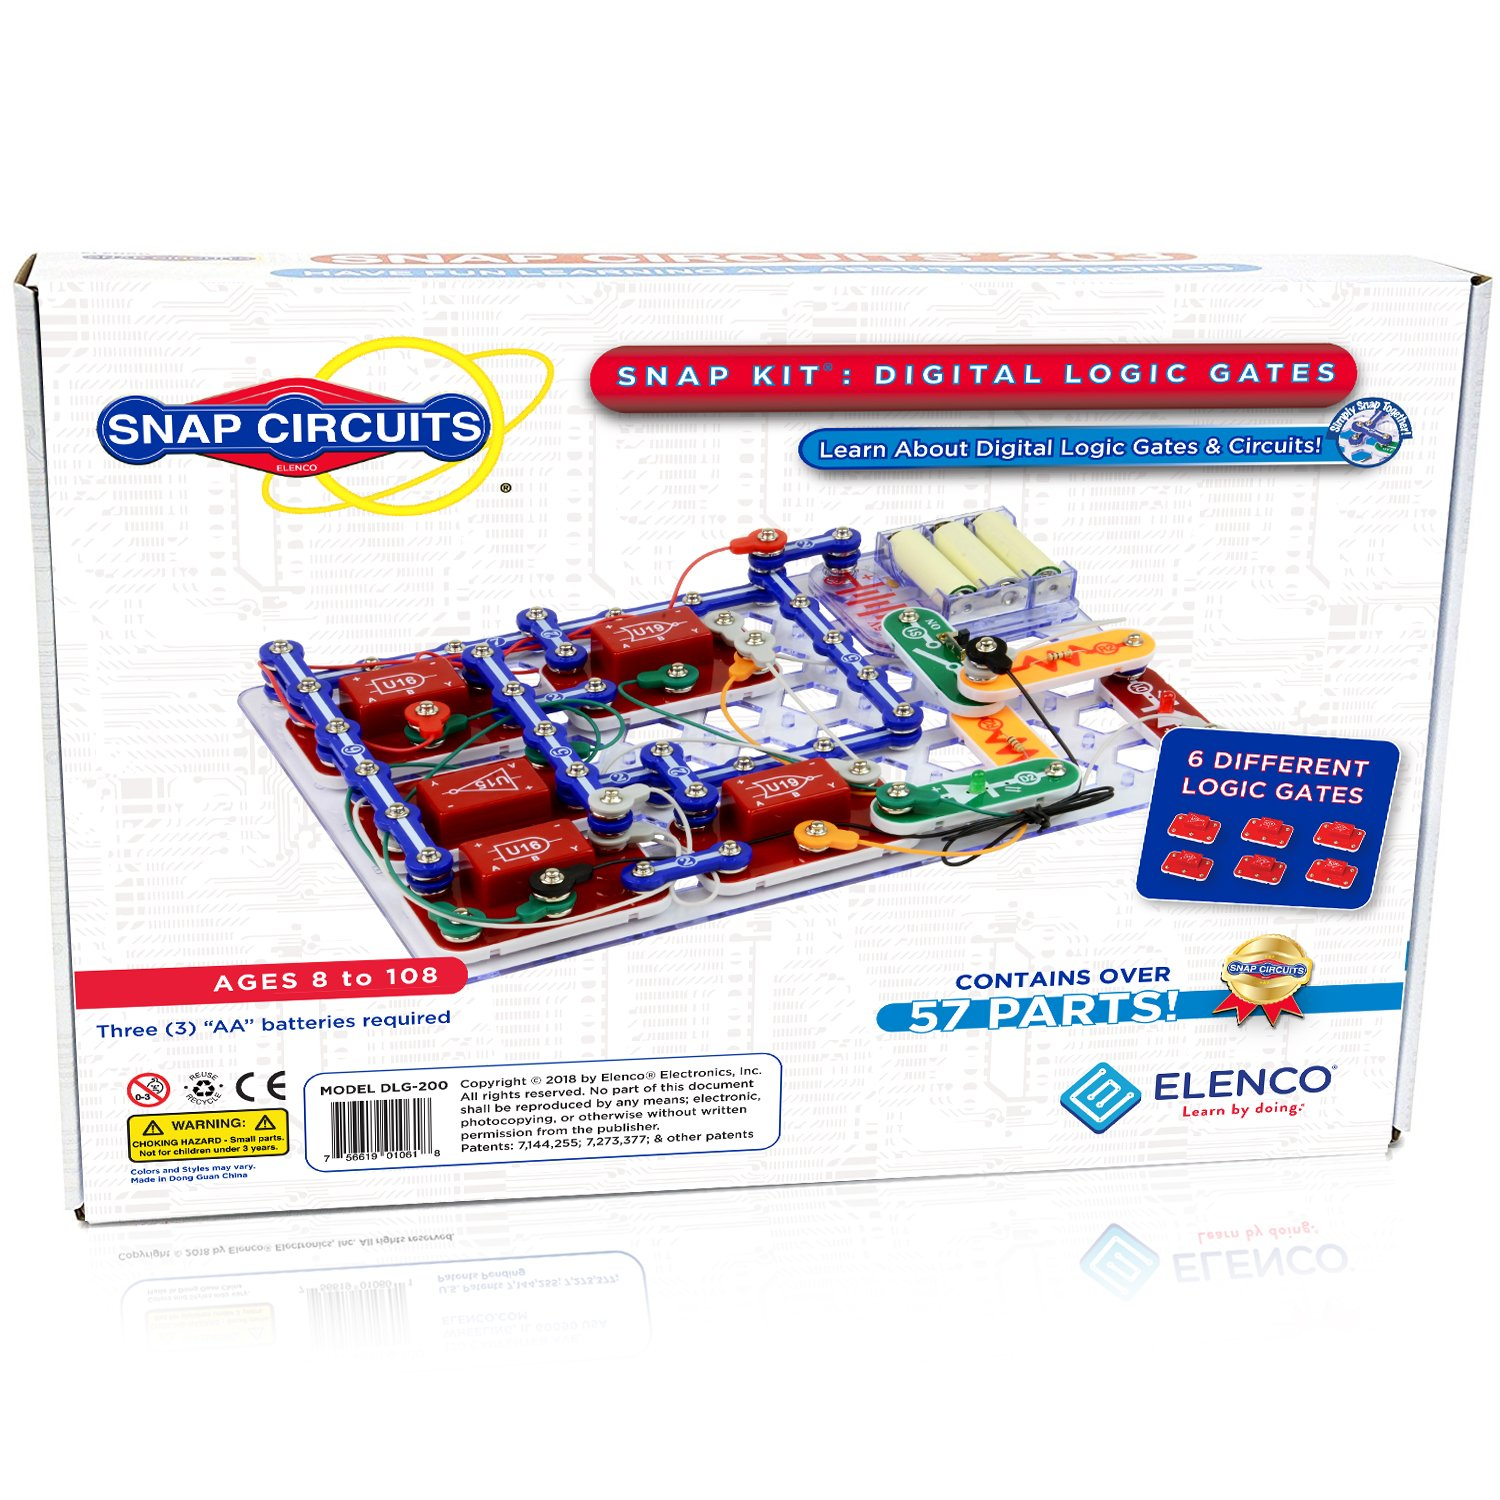 Snap Circuits Digital Logic Gates 200 Exploration Kit Replacement Motor Top For 4 Color Downloadable Project Manual 42 Modules 11 Not Gateand